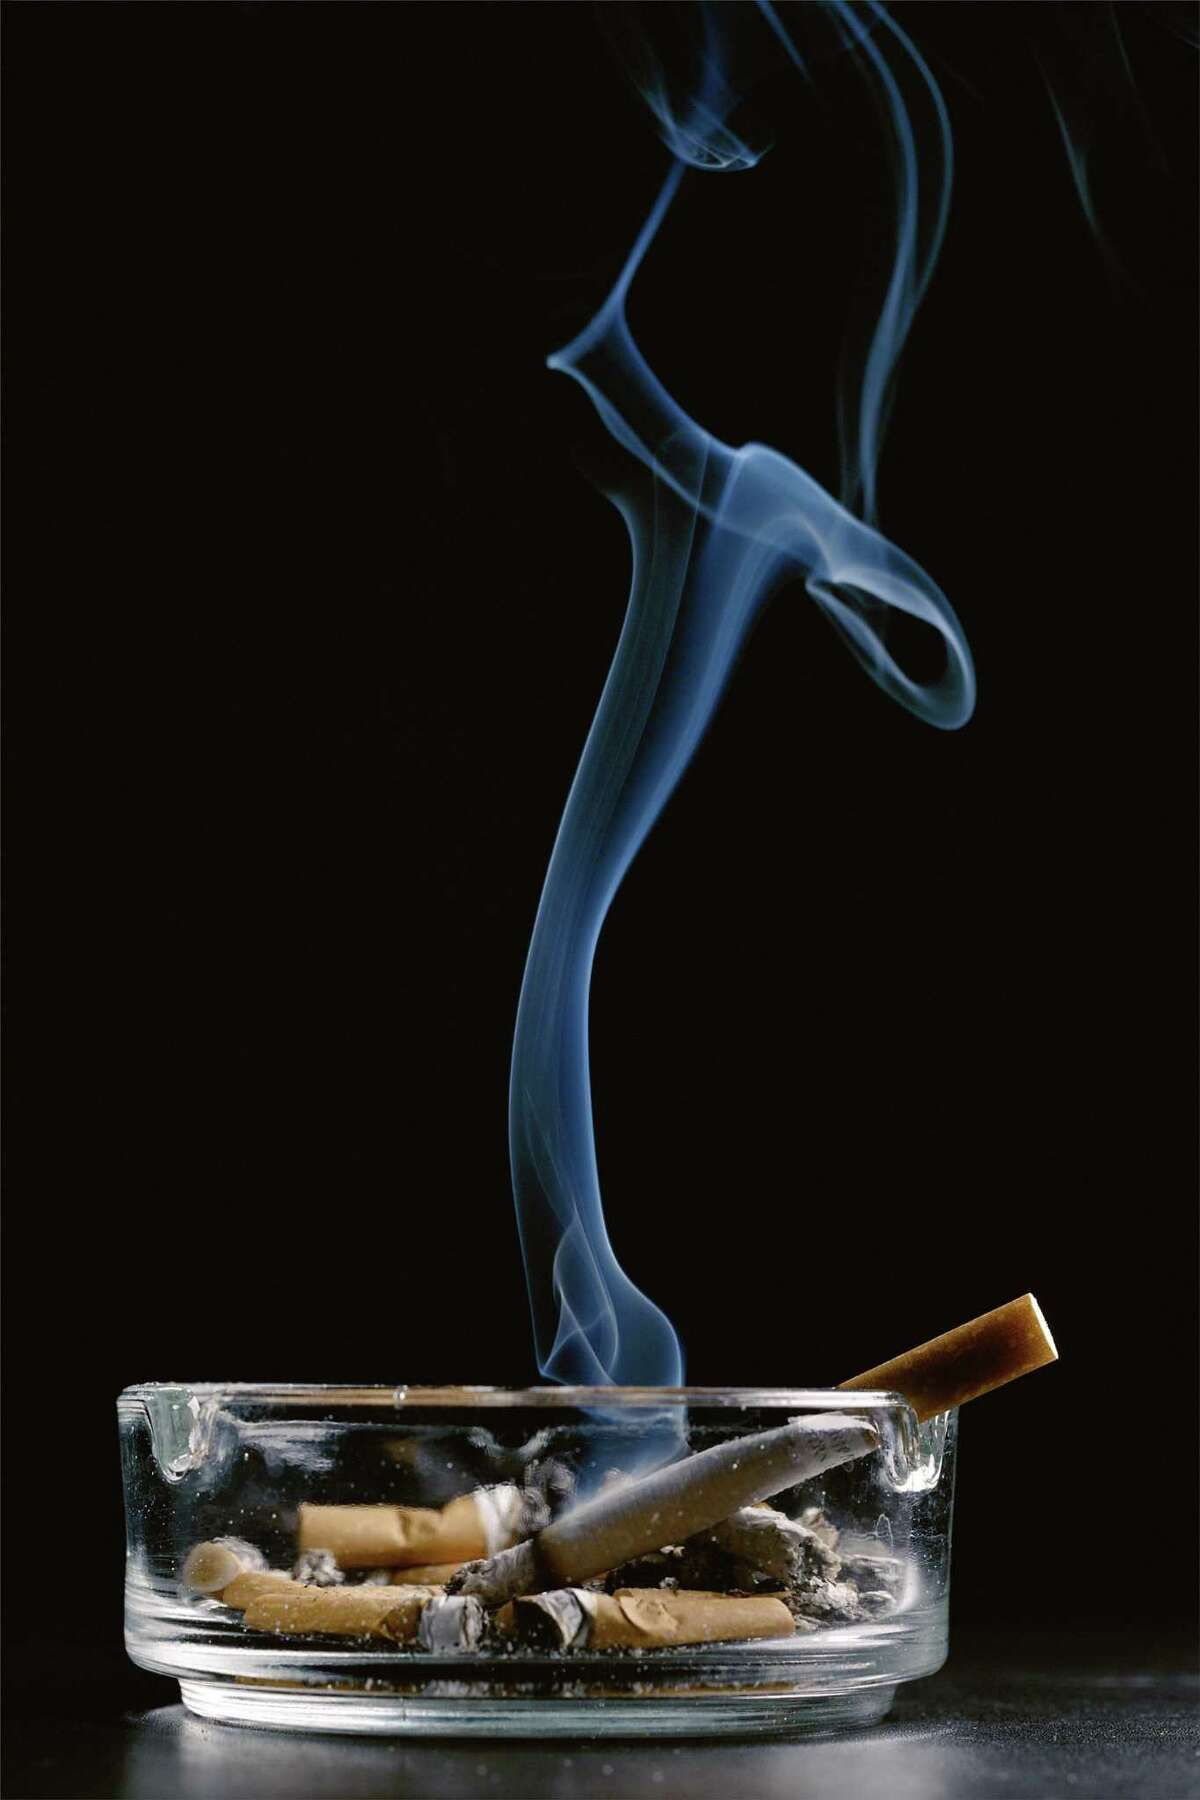 photoalto_6461554.jpg. Ashtray with cigarette butts and lit cigarette smoking against black background. ROYALTY-FREE IMAGE can be used online and reused. Credit: PhotoAlto / WireImage